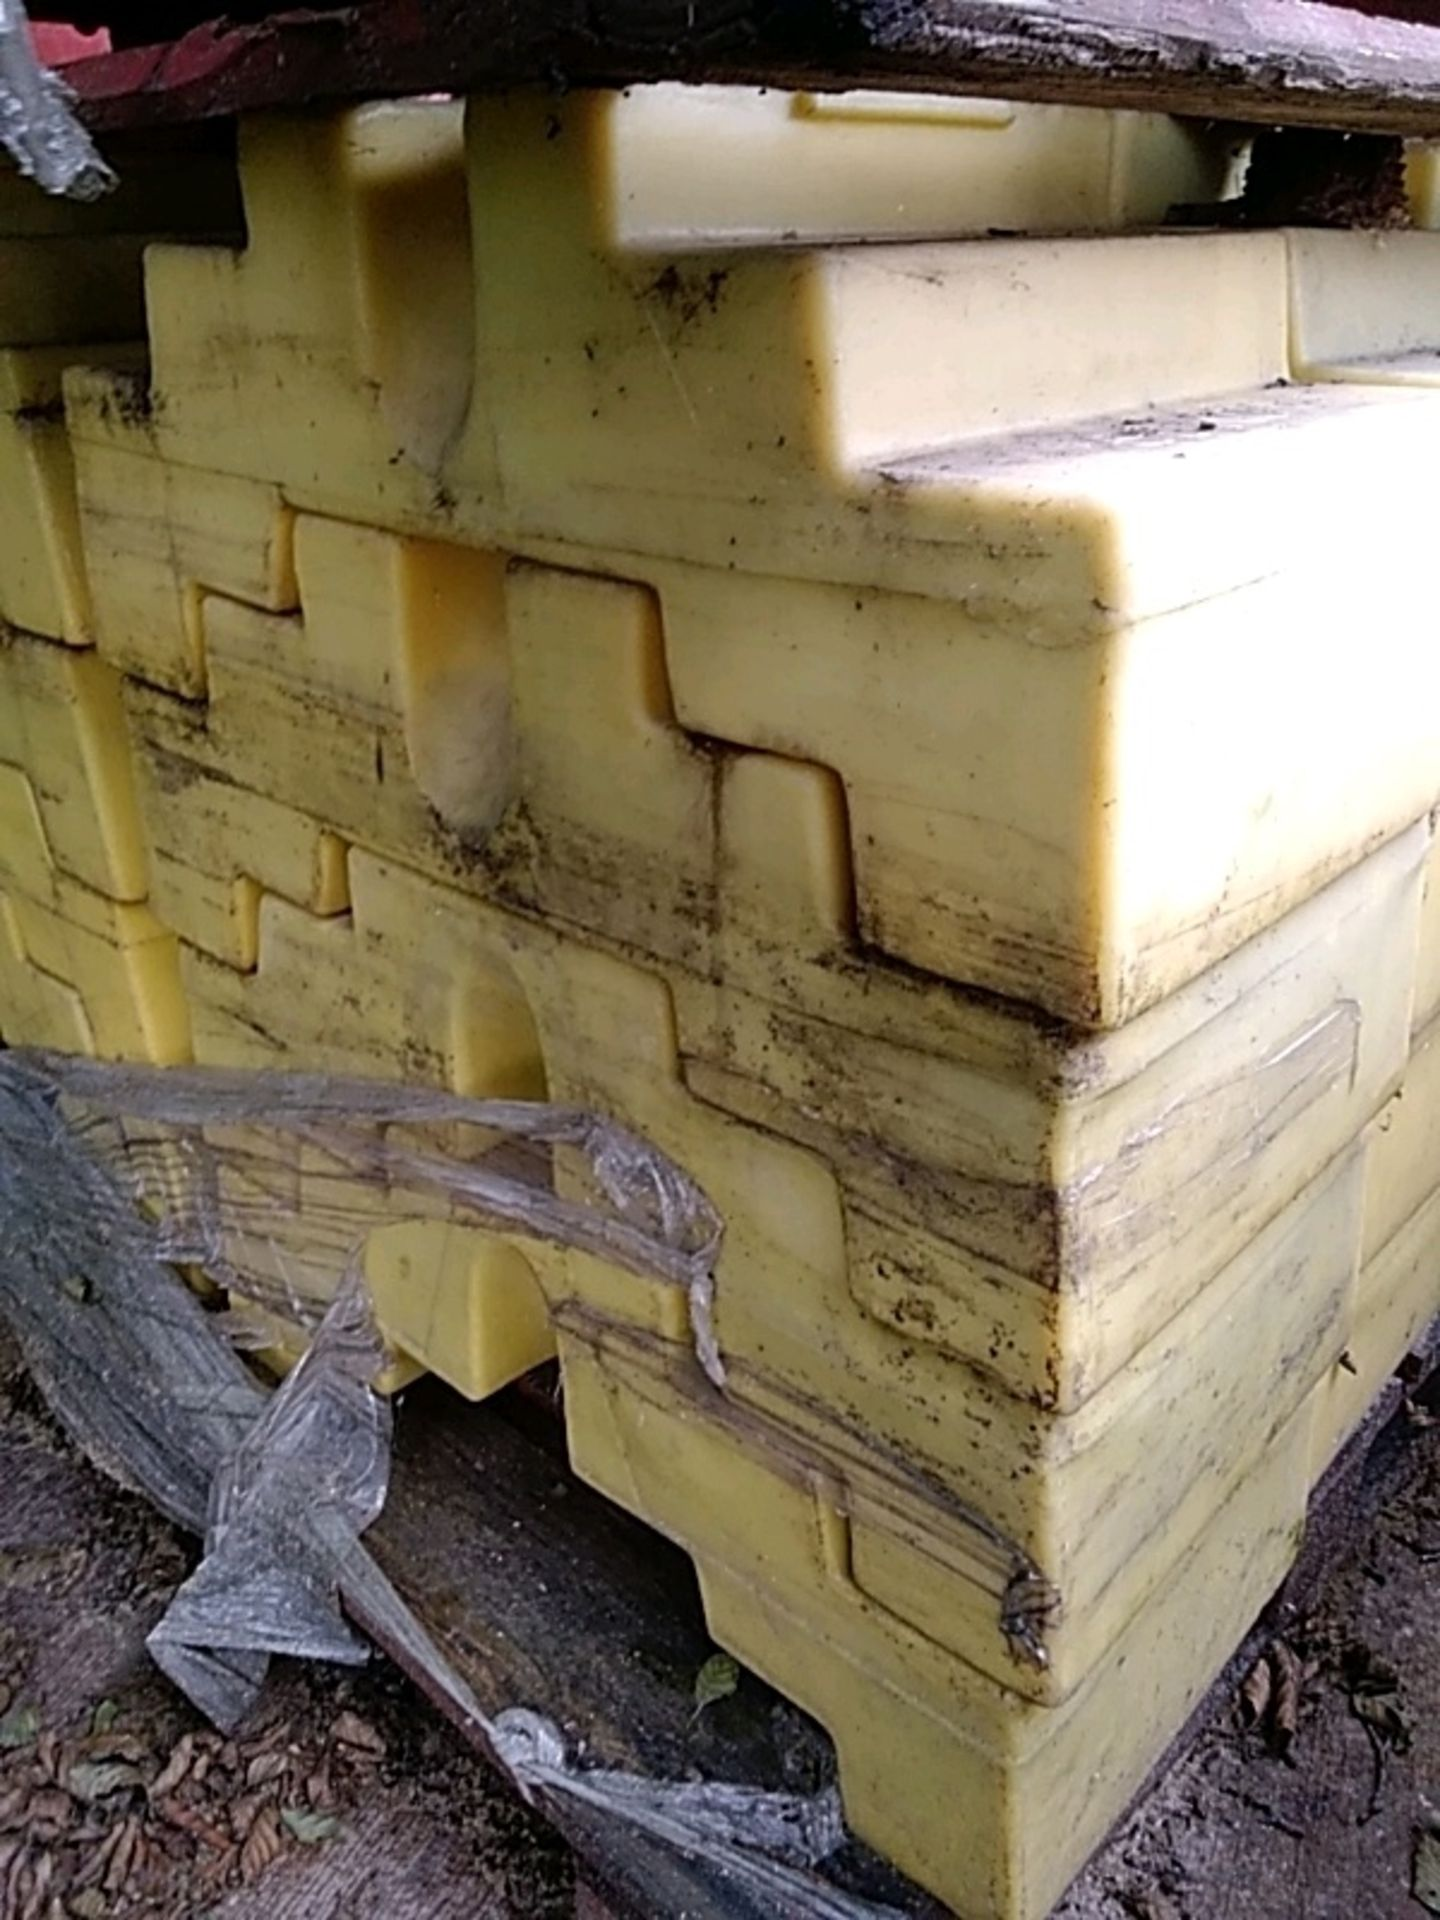 (80) Temporary Fencing Brace Block 50kg - Image 2 of 2